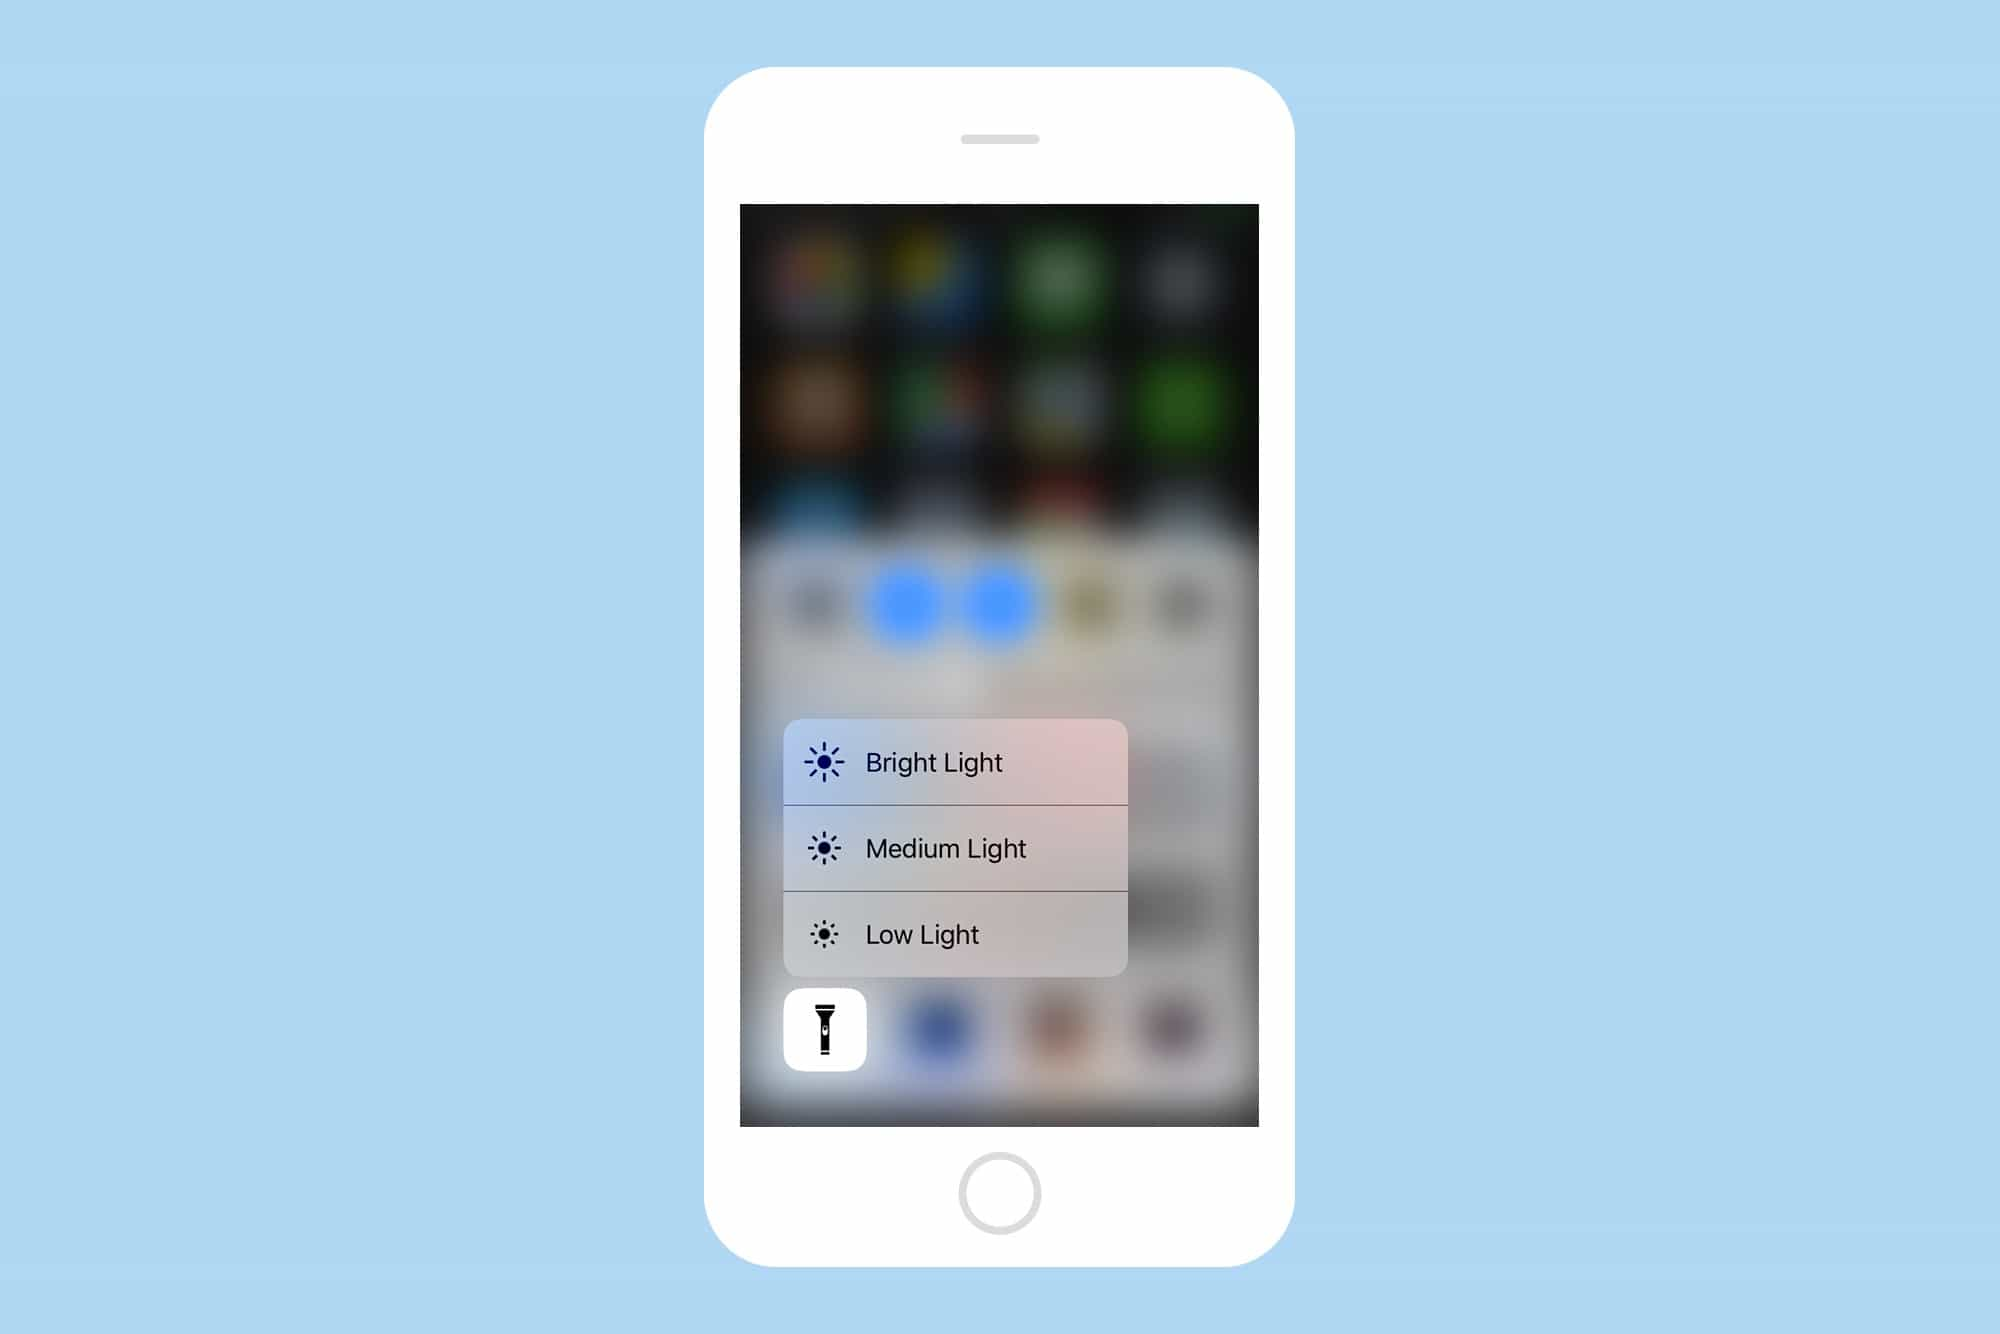 Save battery, or go easy on your eyes, with flashlight brightness controls.